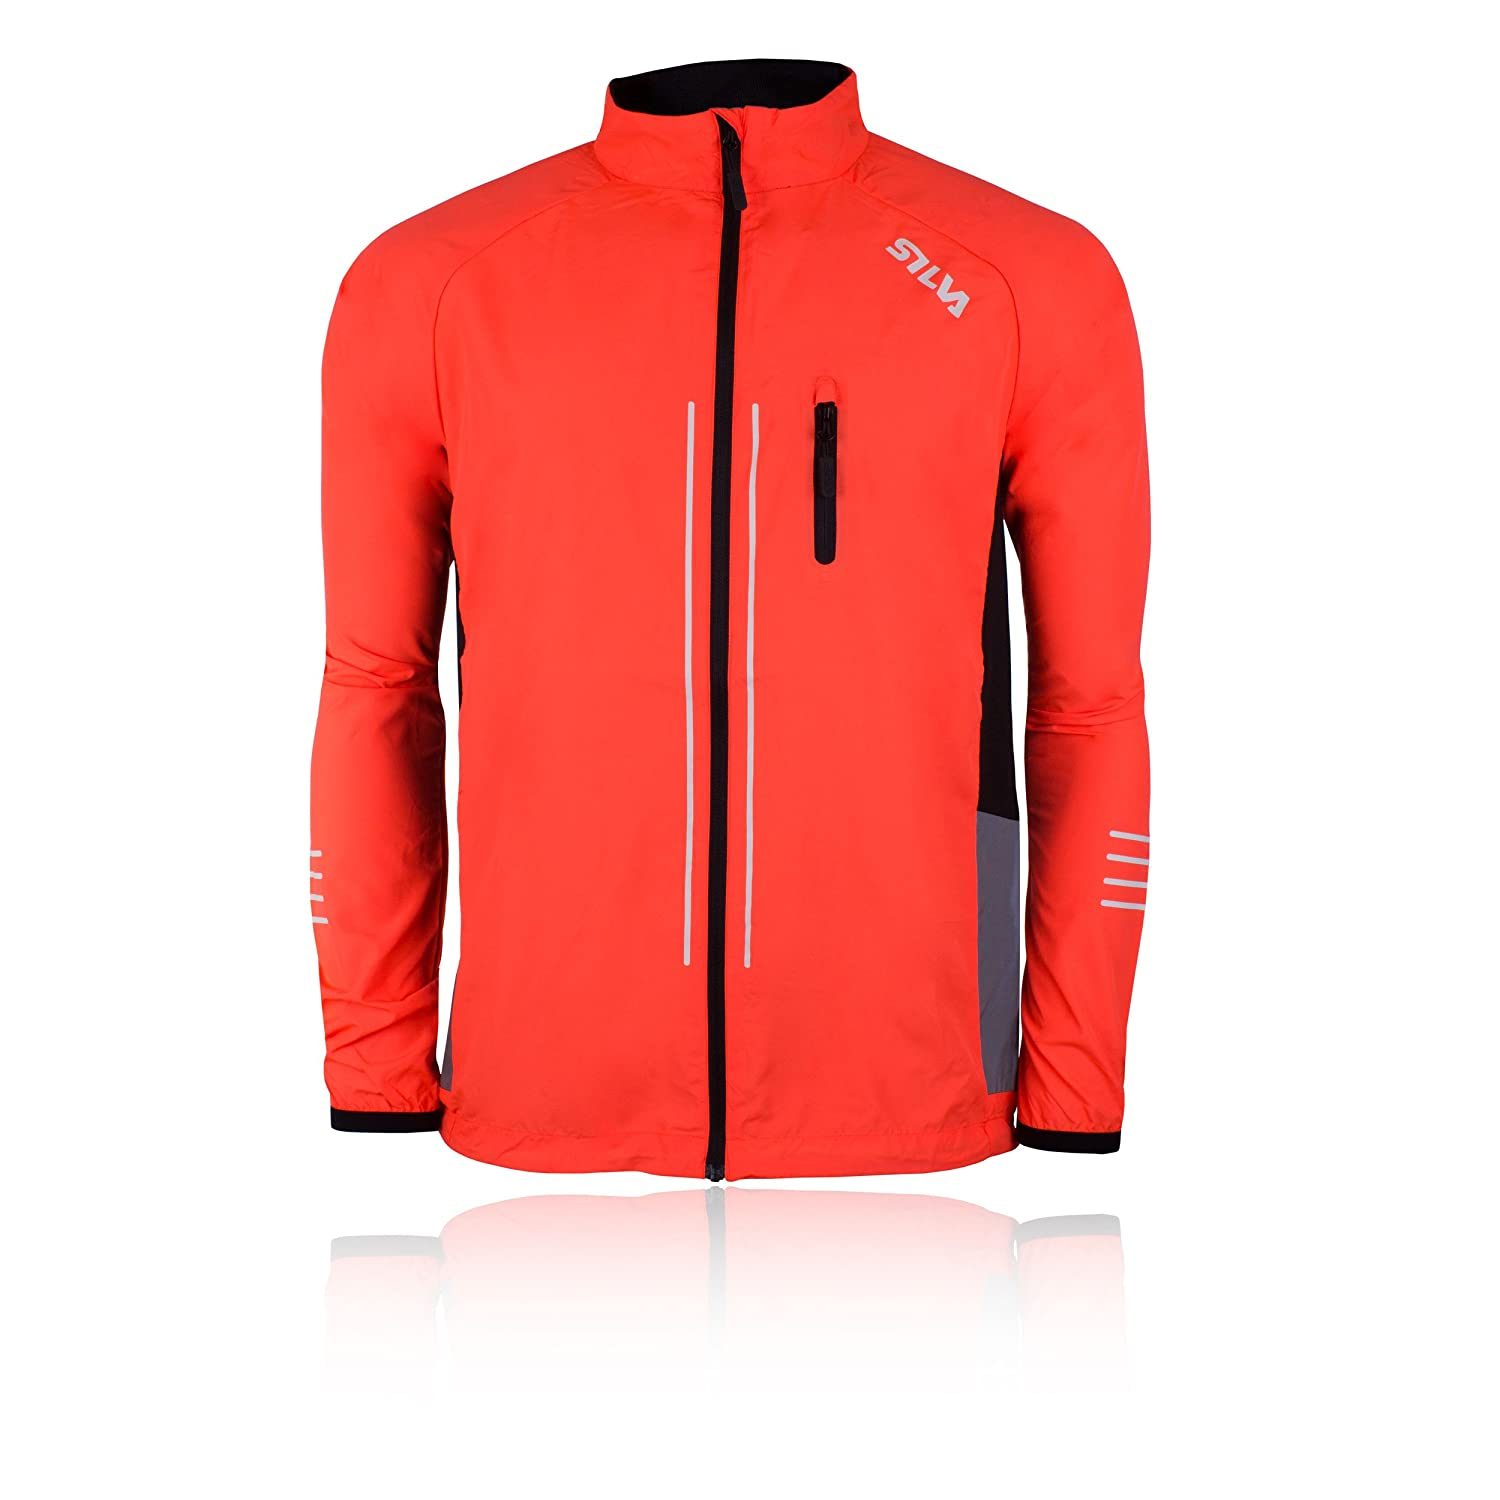 Silva Perform Reflective Running Jacket